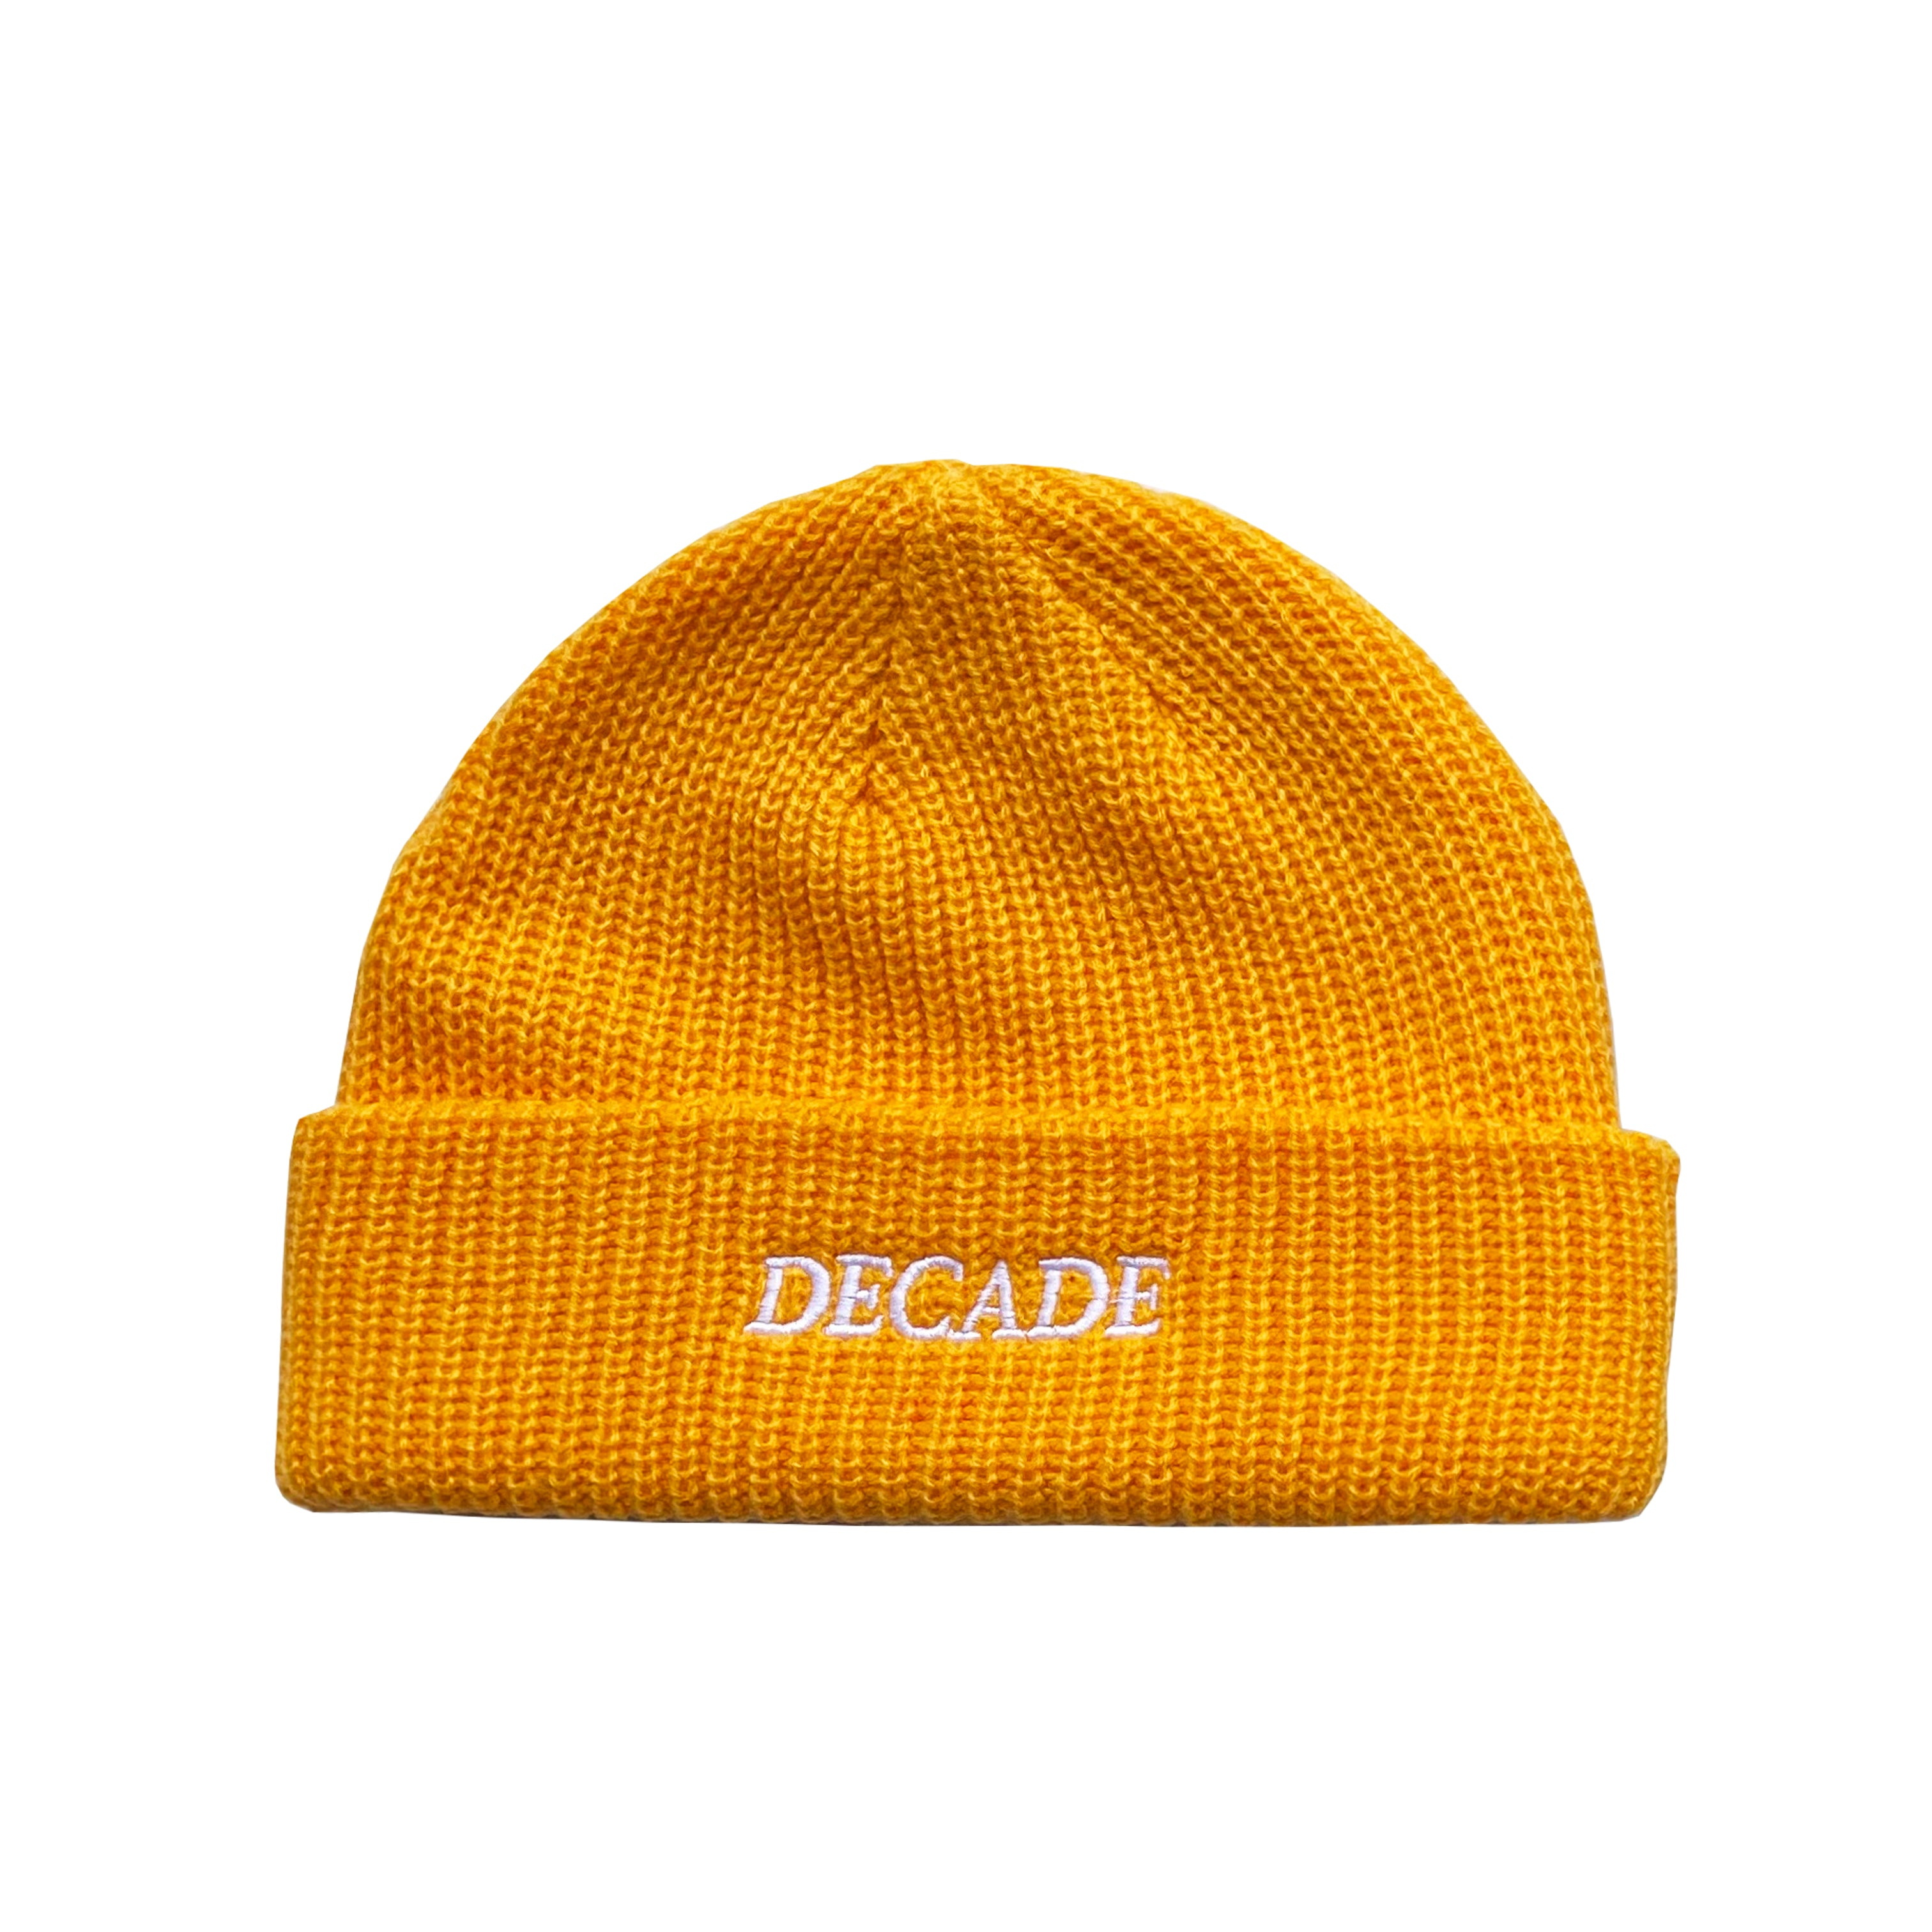 Decade Cable Beanie - Mustard